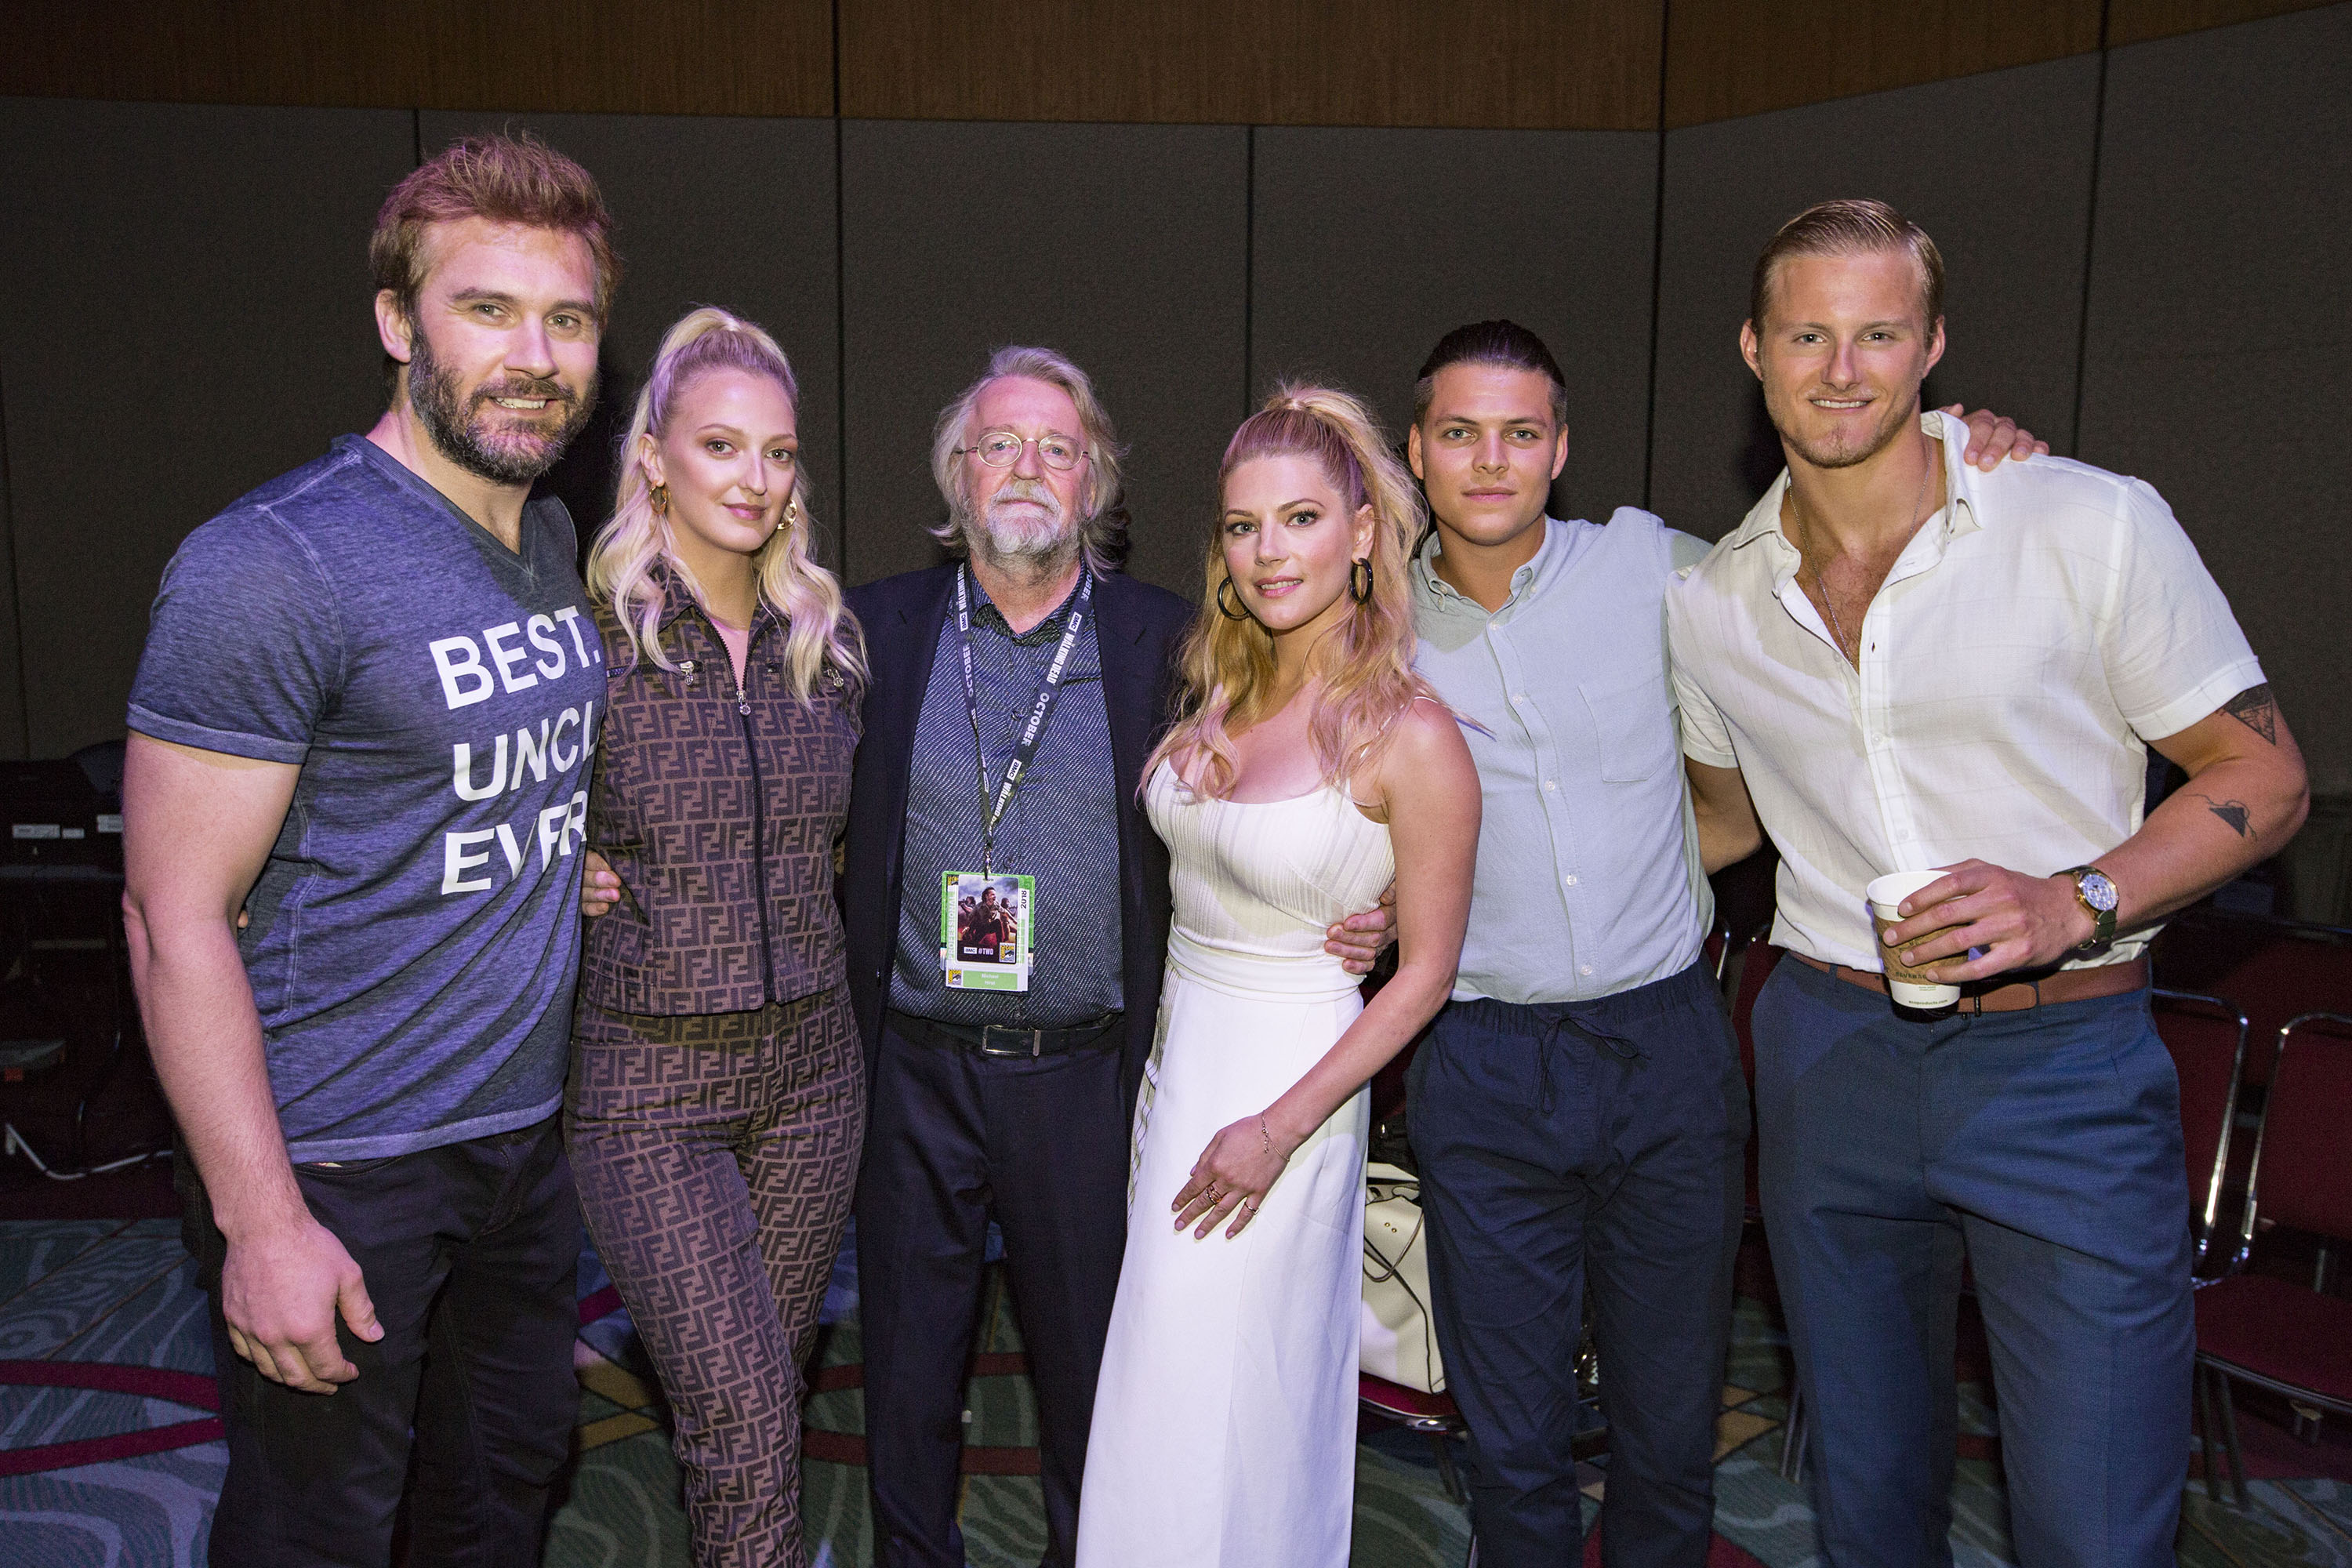 Michael Hirst, Katheryn Winnick, Alexander Ludwig, Clive Standen, and Georgia Hirst at an event for Vikings (2013)